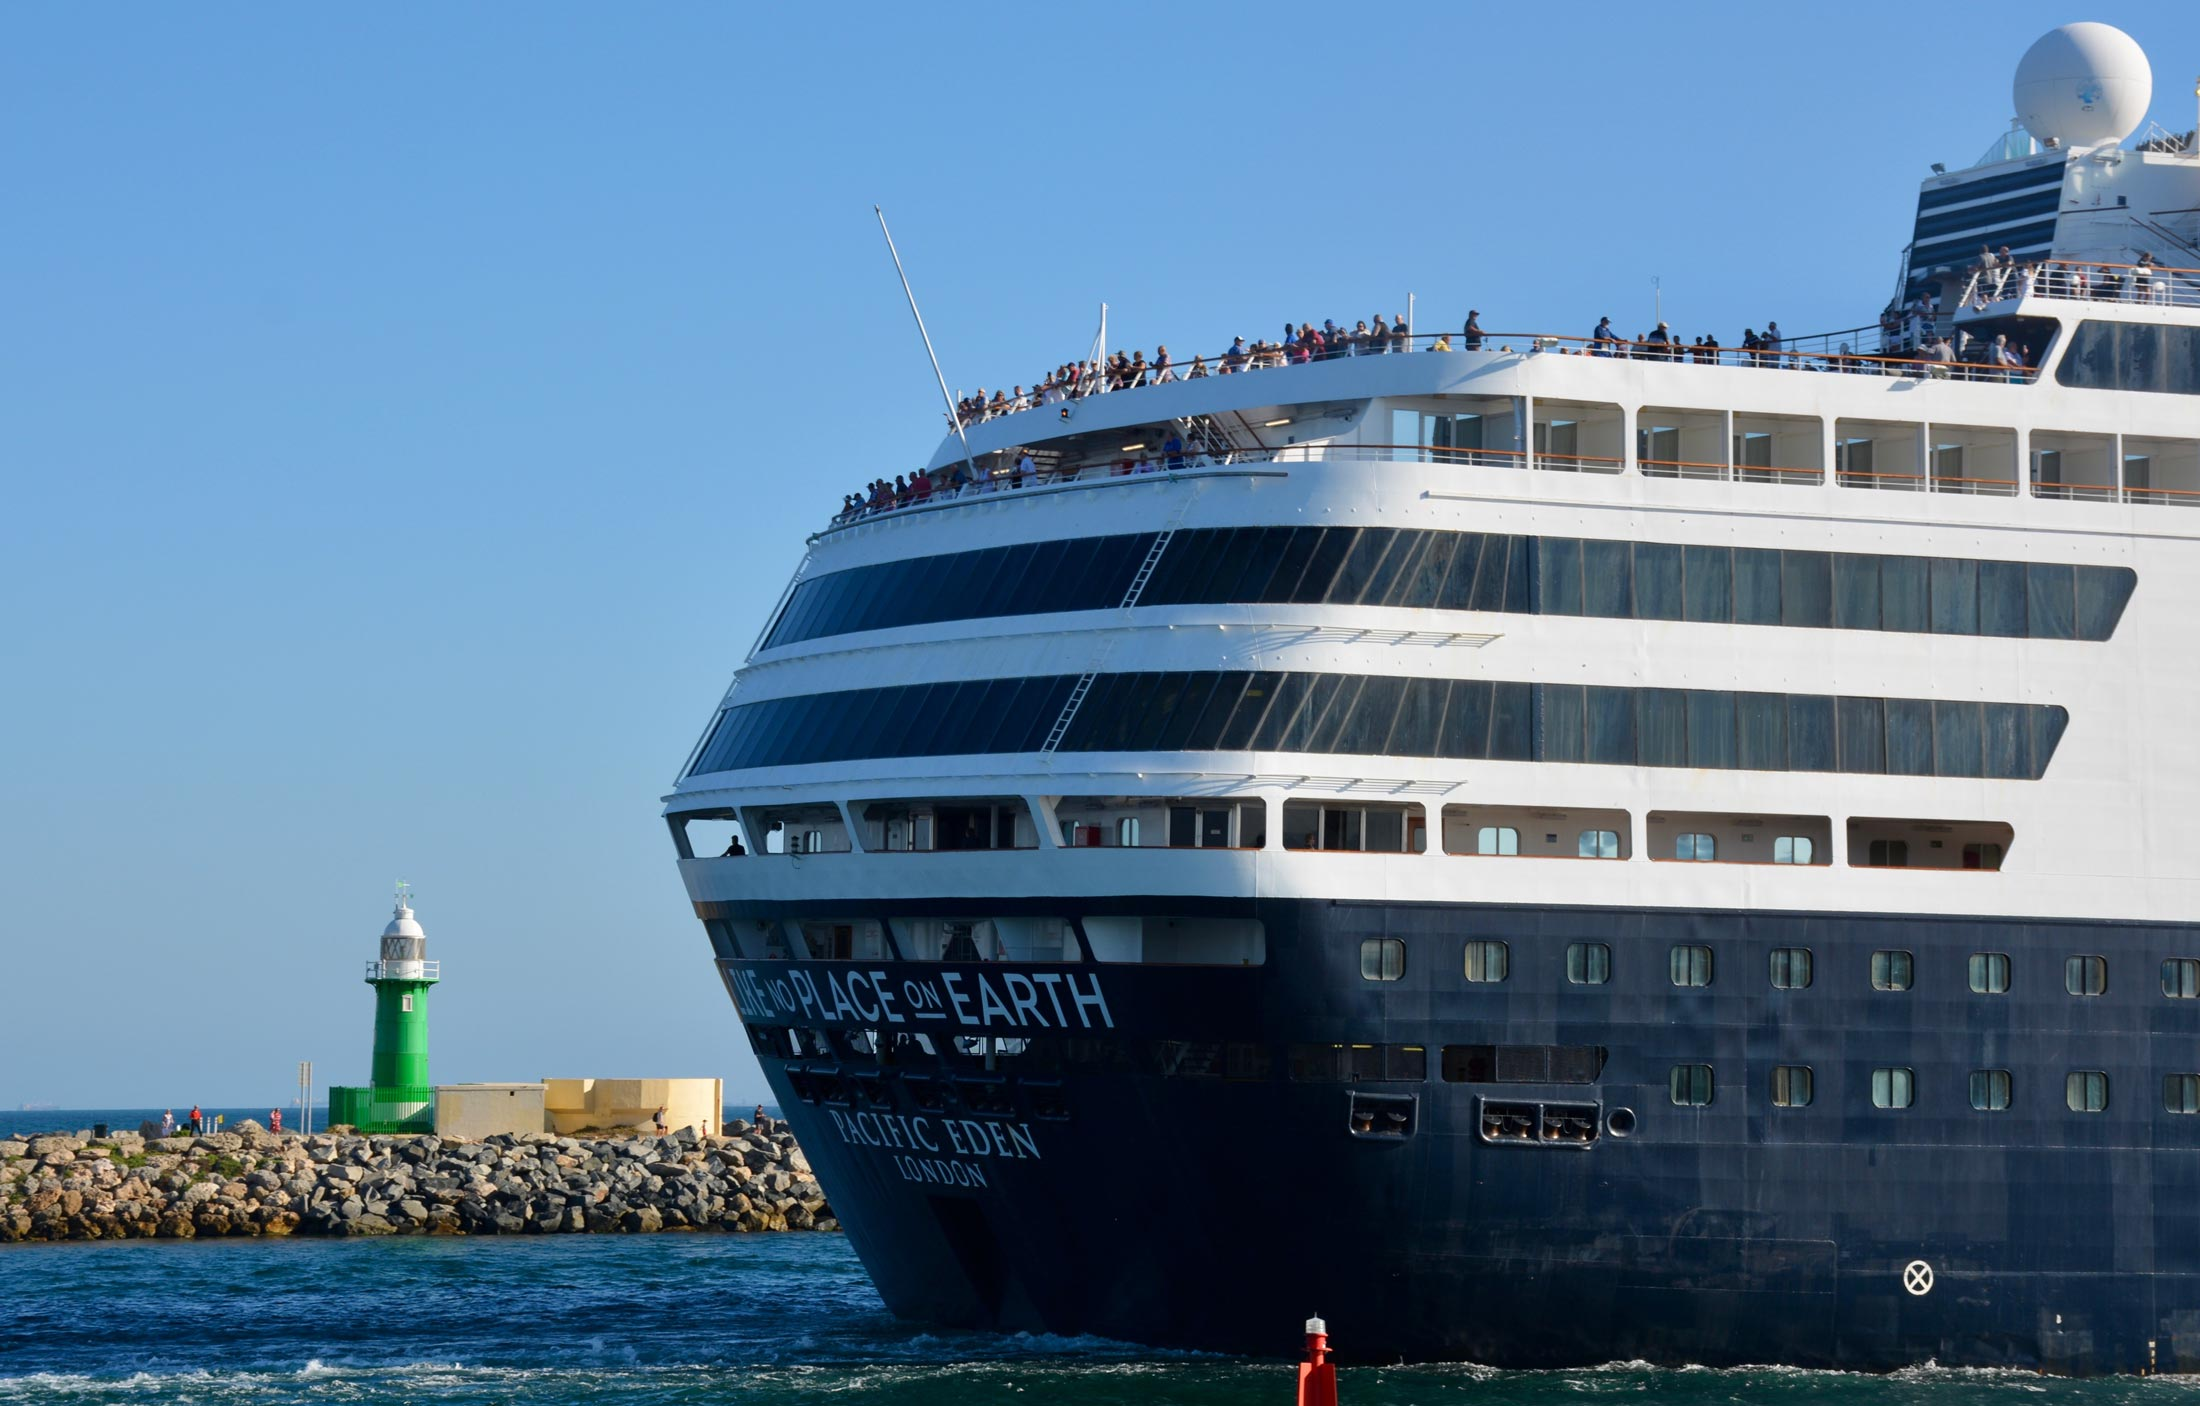 pacific-eden-fremantle-shipping-